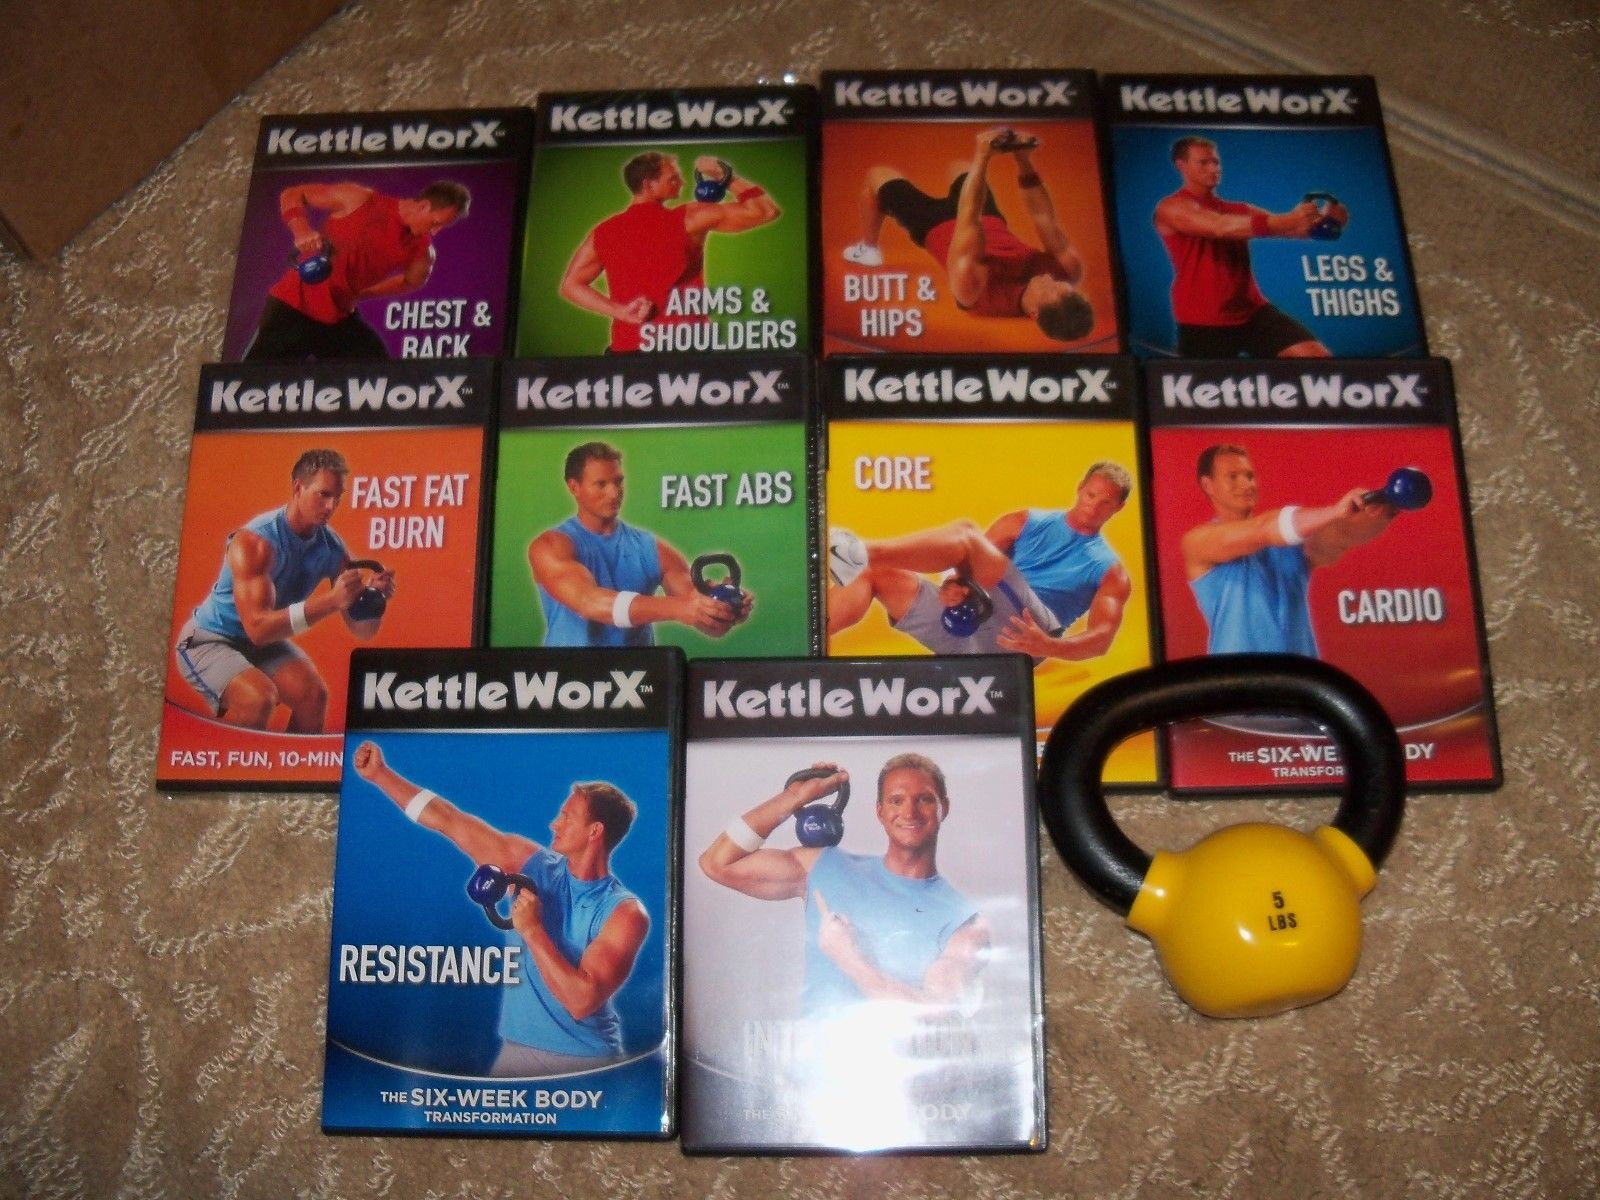 Kettle WorX 6 Week Body Transformation & More W/ 5lb Weight HTF